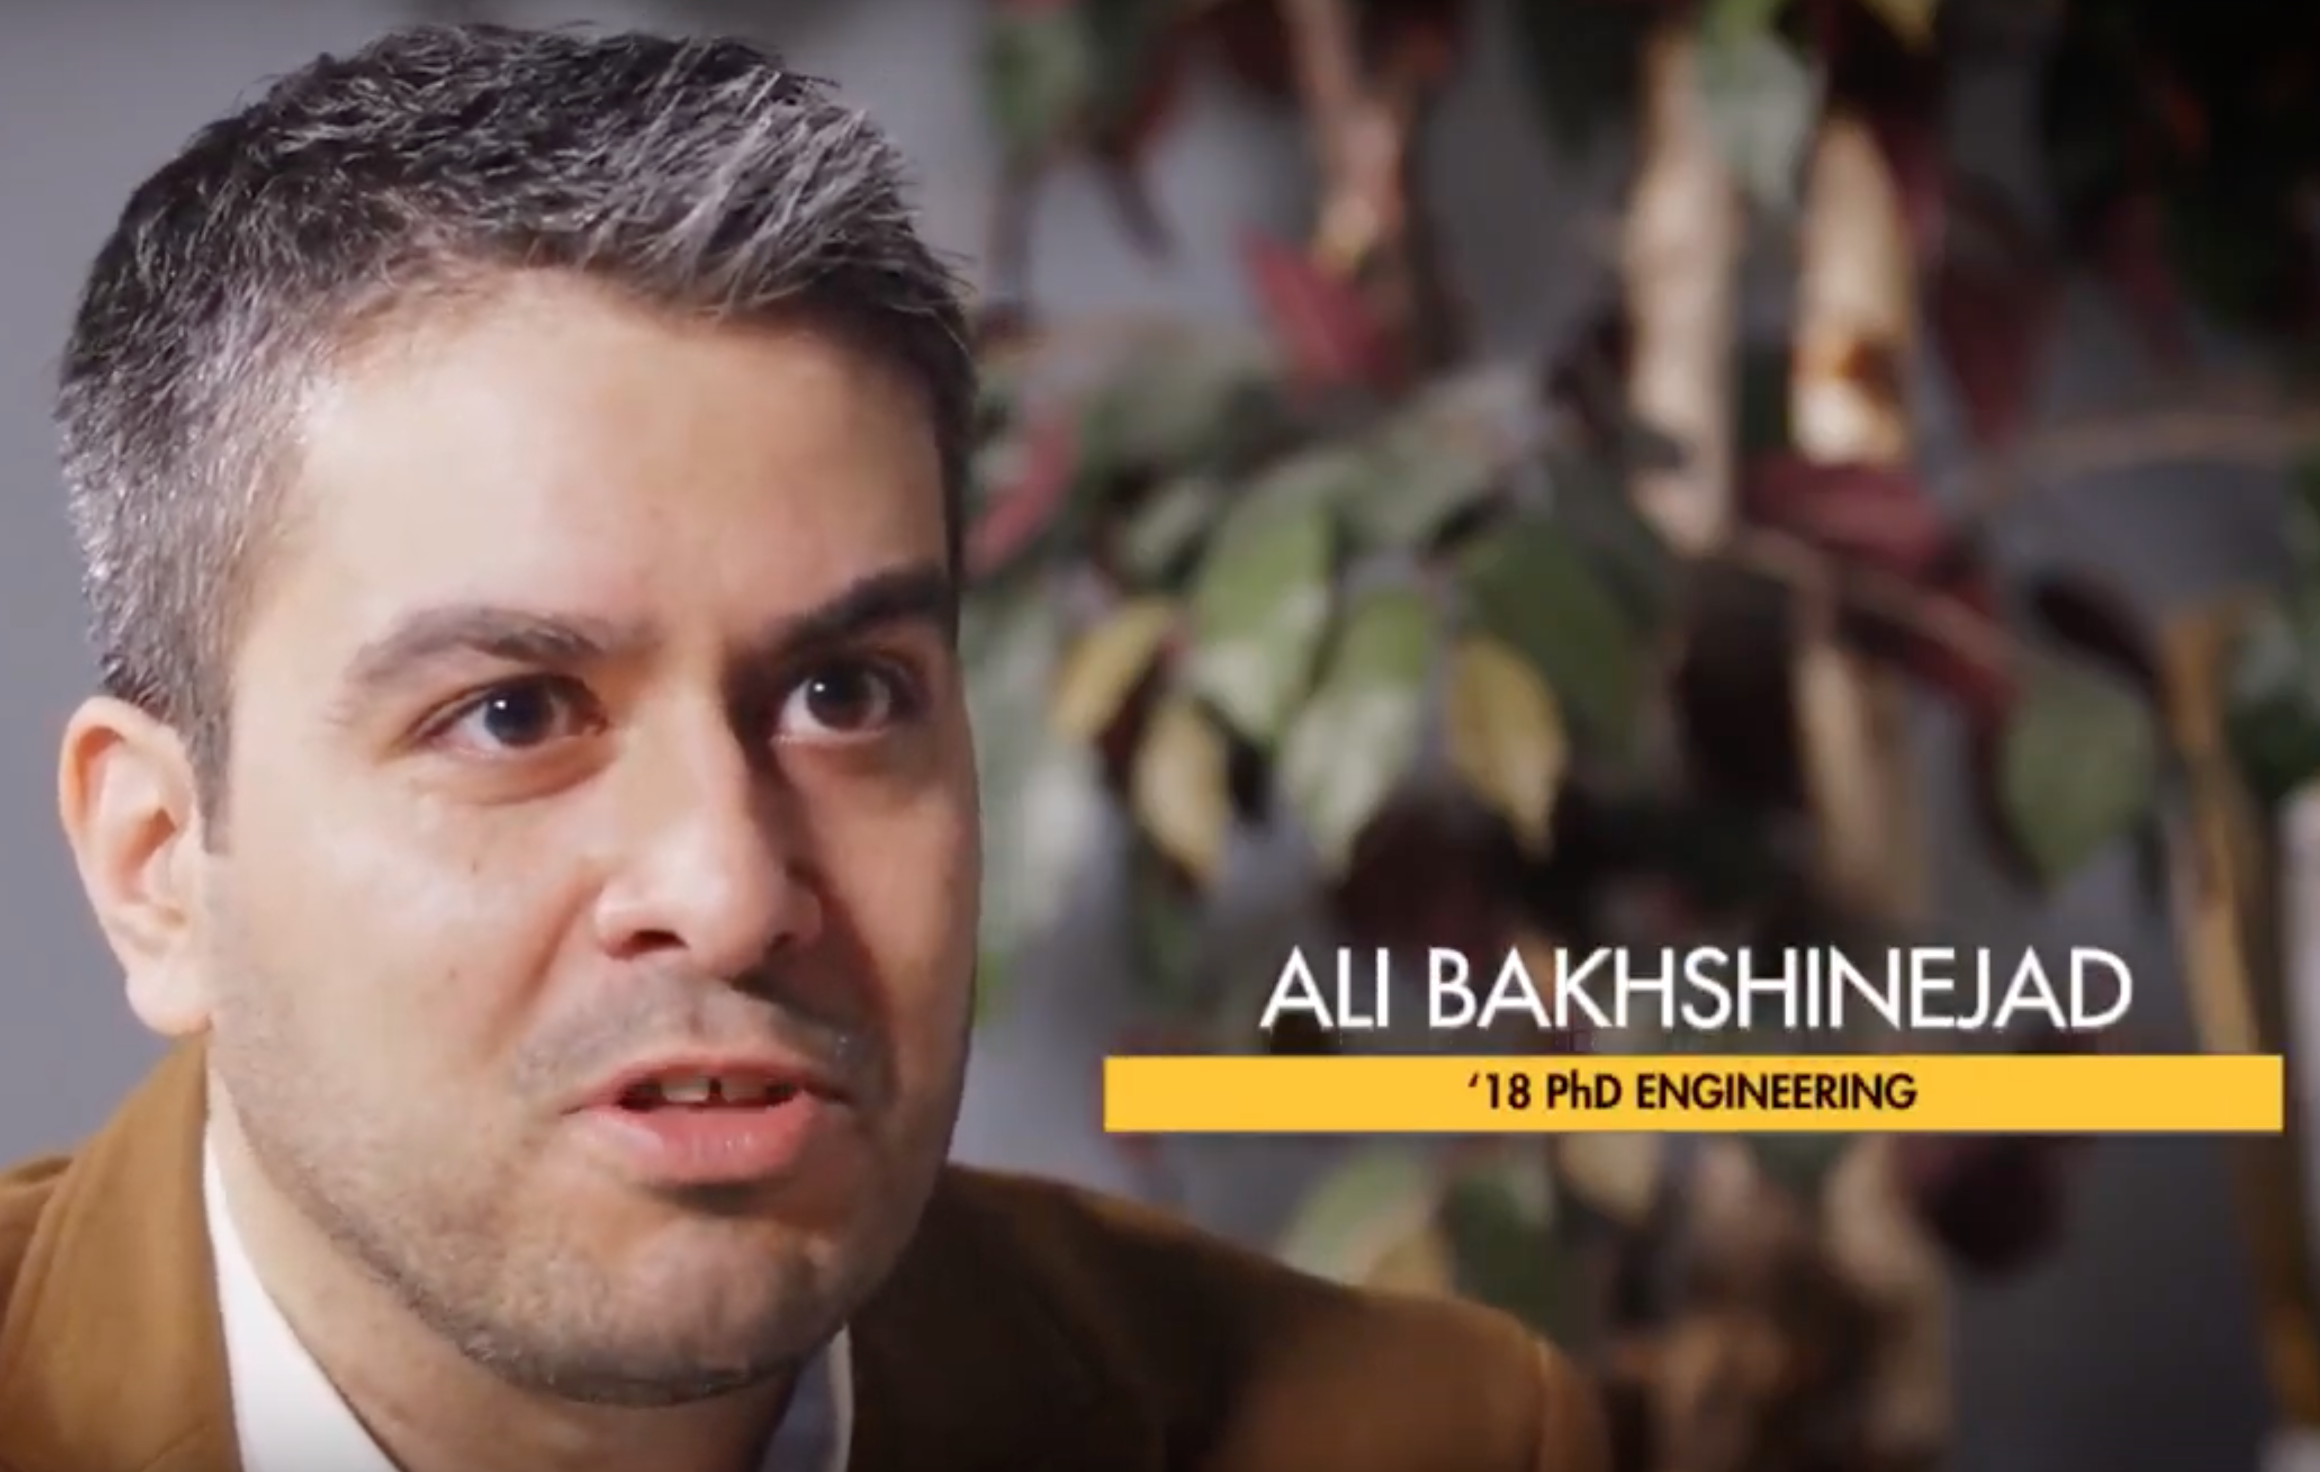 Bakhshinejad a finalist in Wisconsin Governor's Business